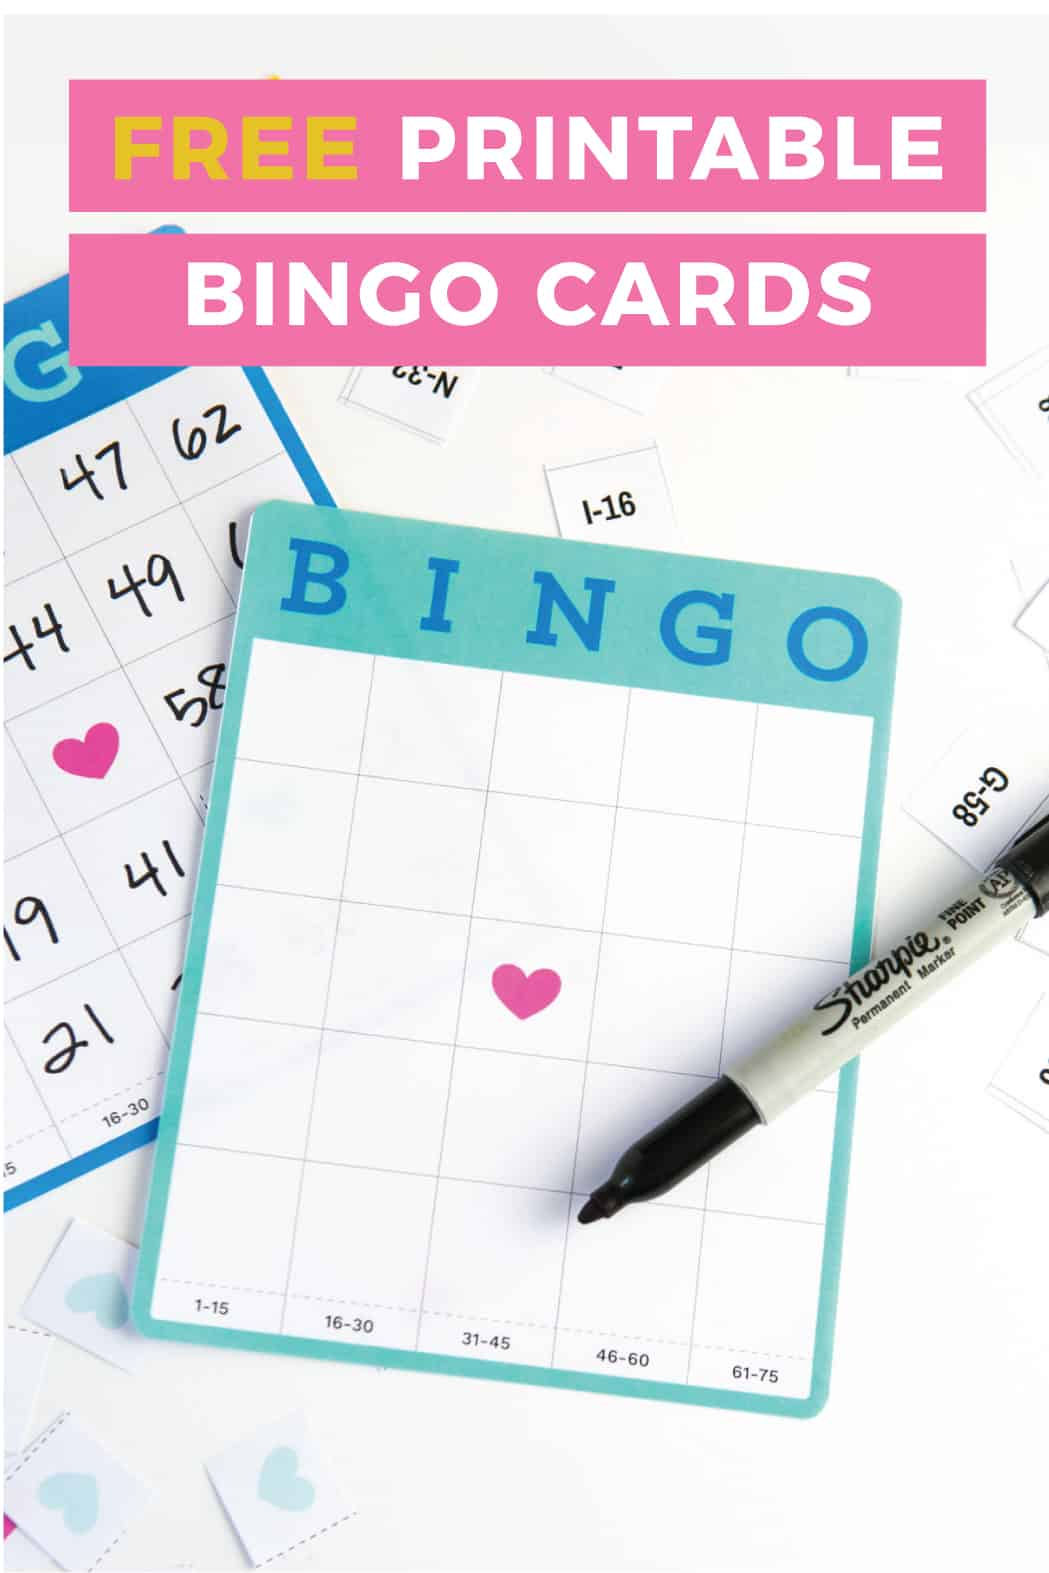 Need a party game for a large crowd?! Blank bingo cards mean you can play with an unlimited number of people!